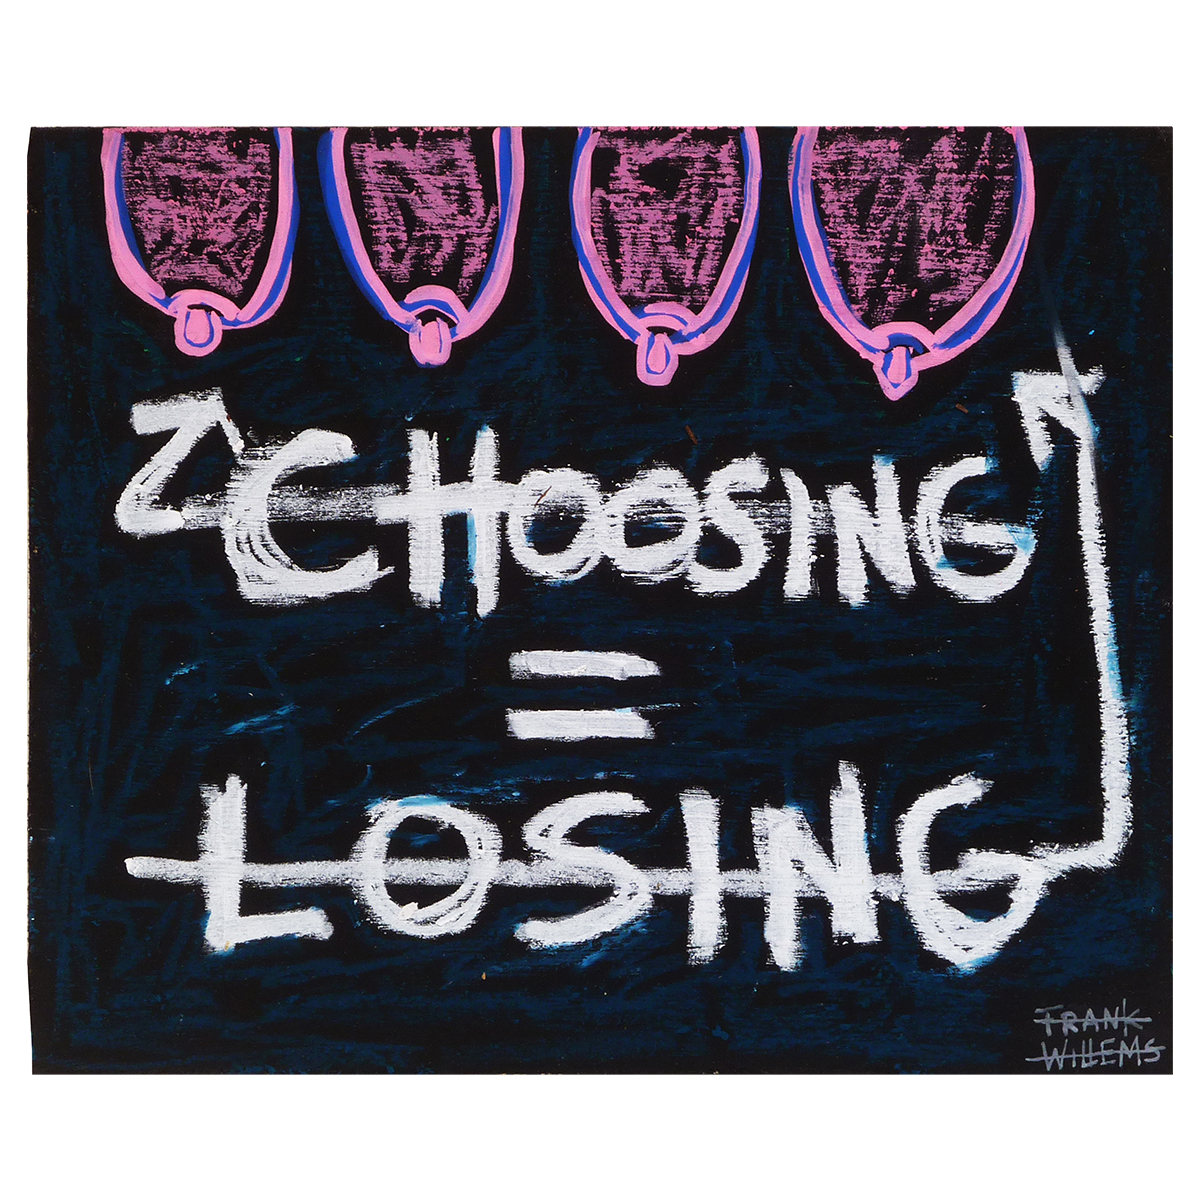 CHOOSING = LOSING - Frank Willems